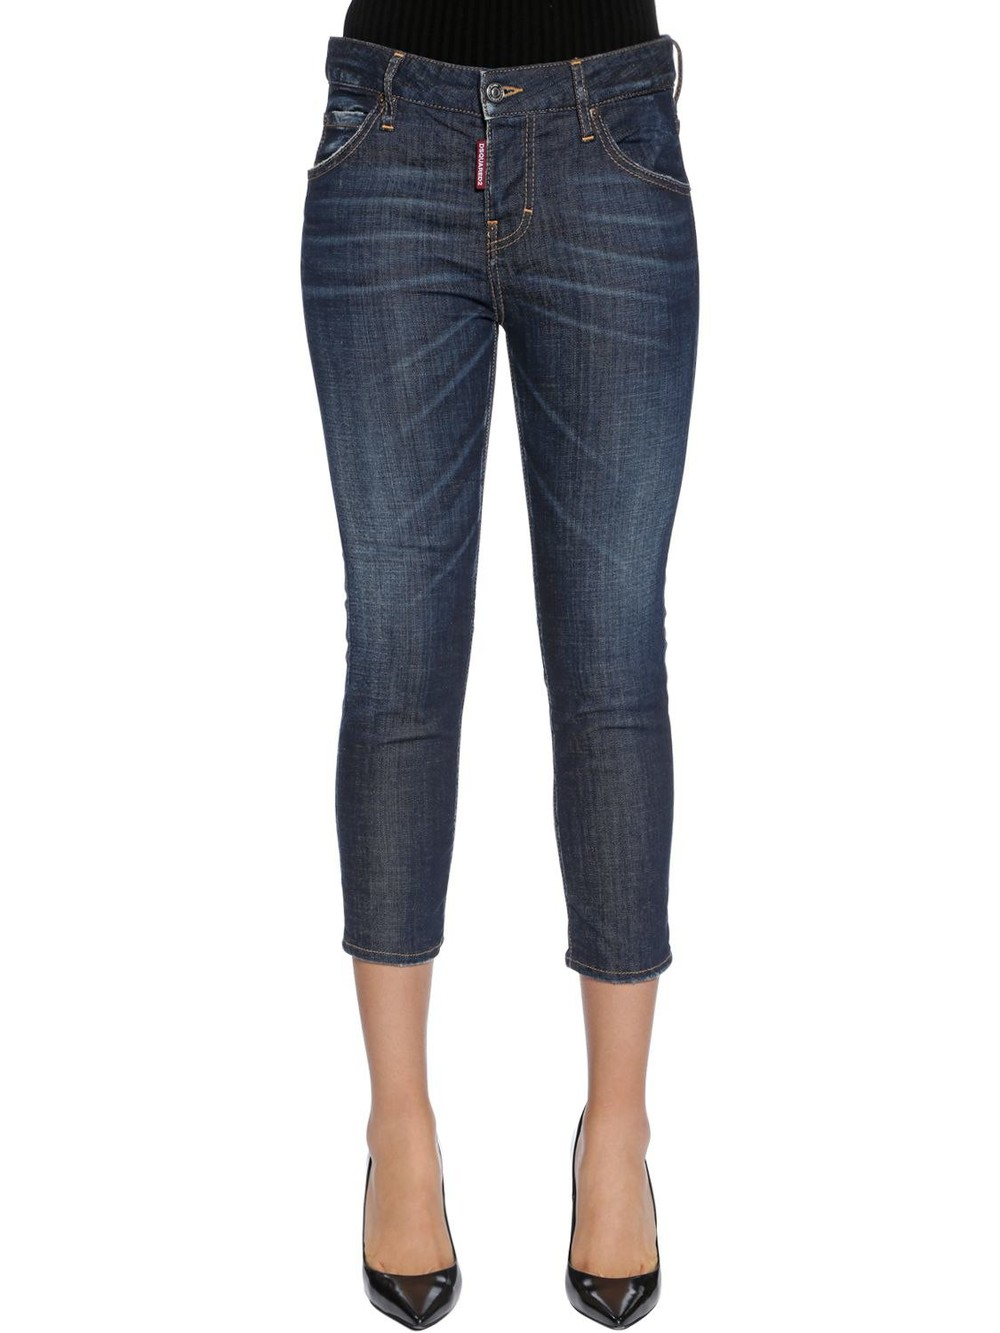 DSQUARED2 Cool Girl Cropped Cotton Denim Jeans in blue